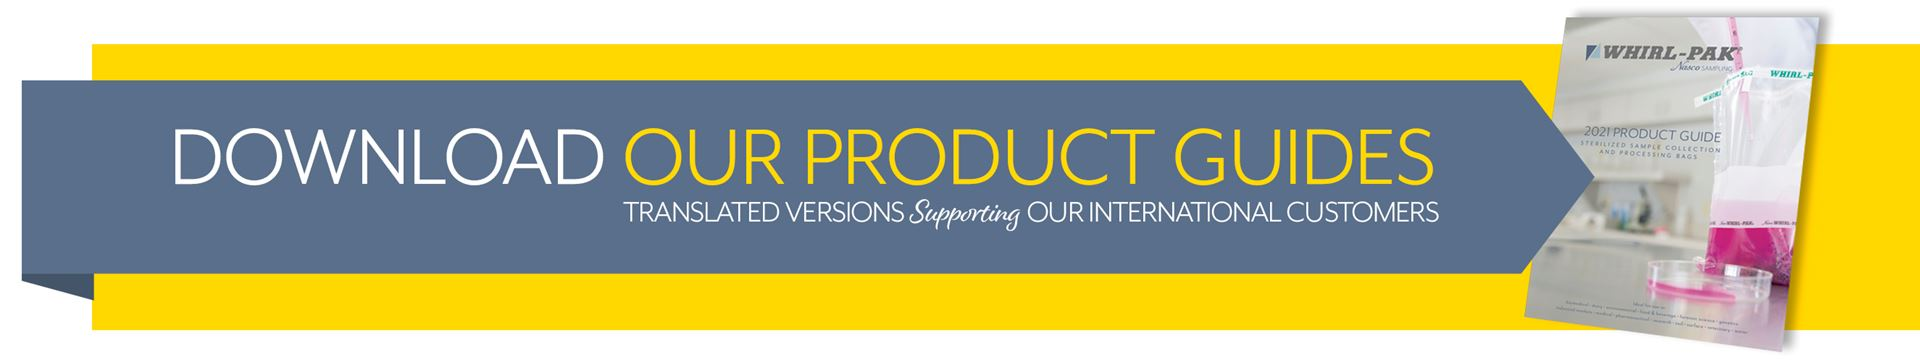 Download our Latest Product Guide